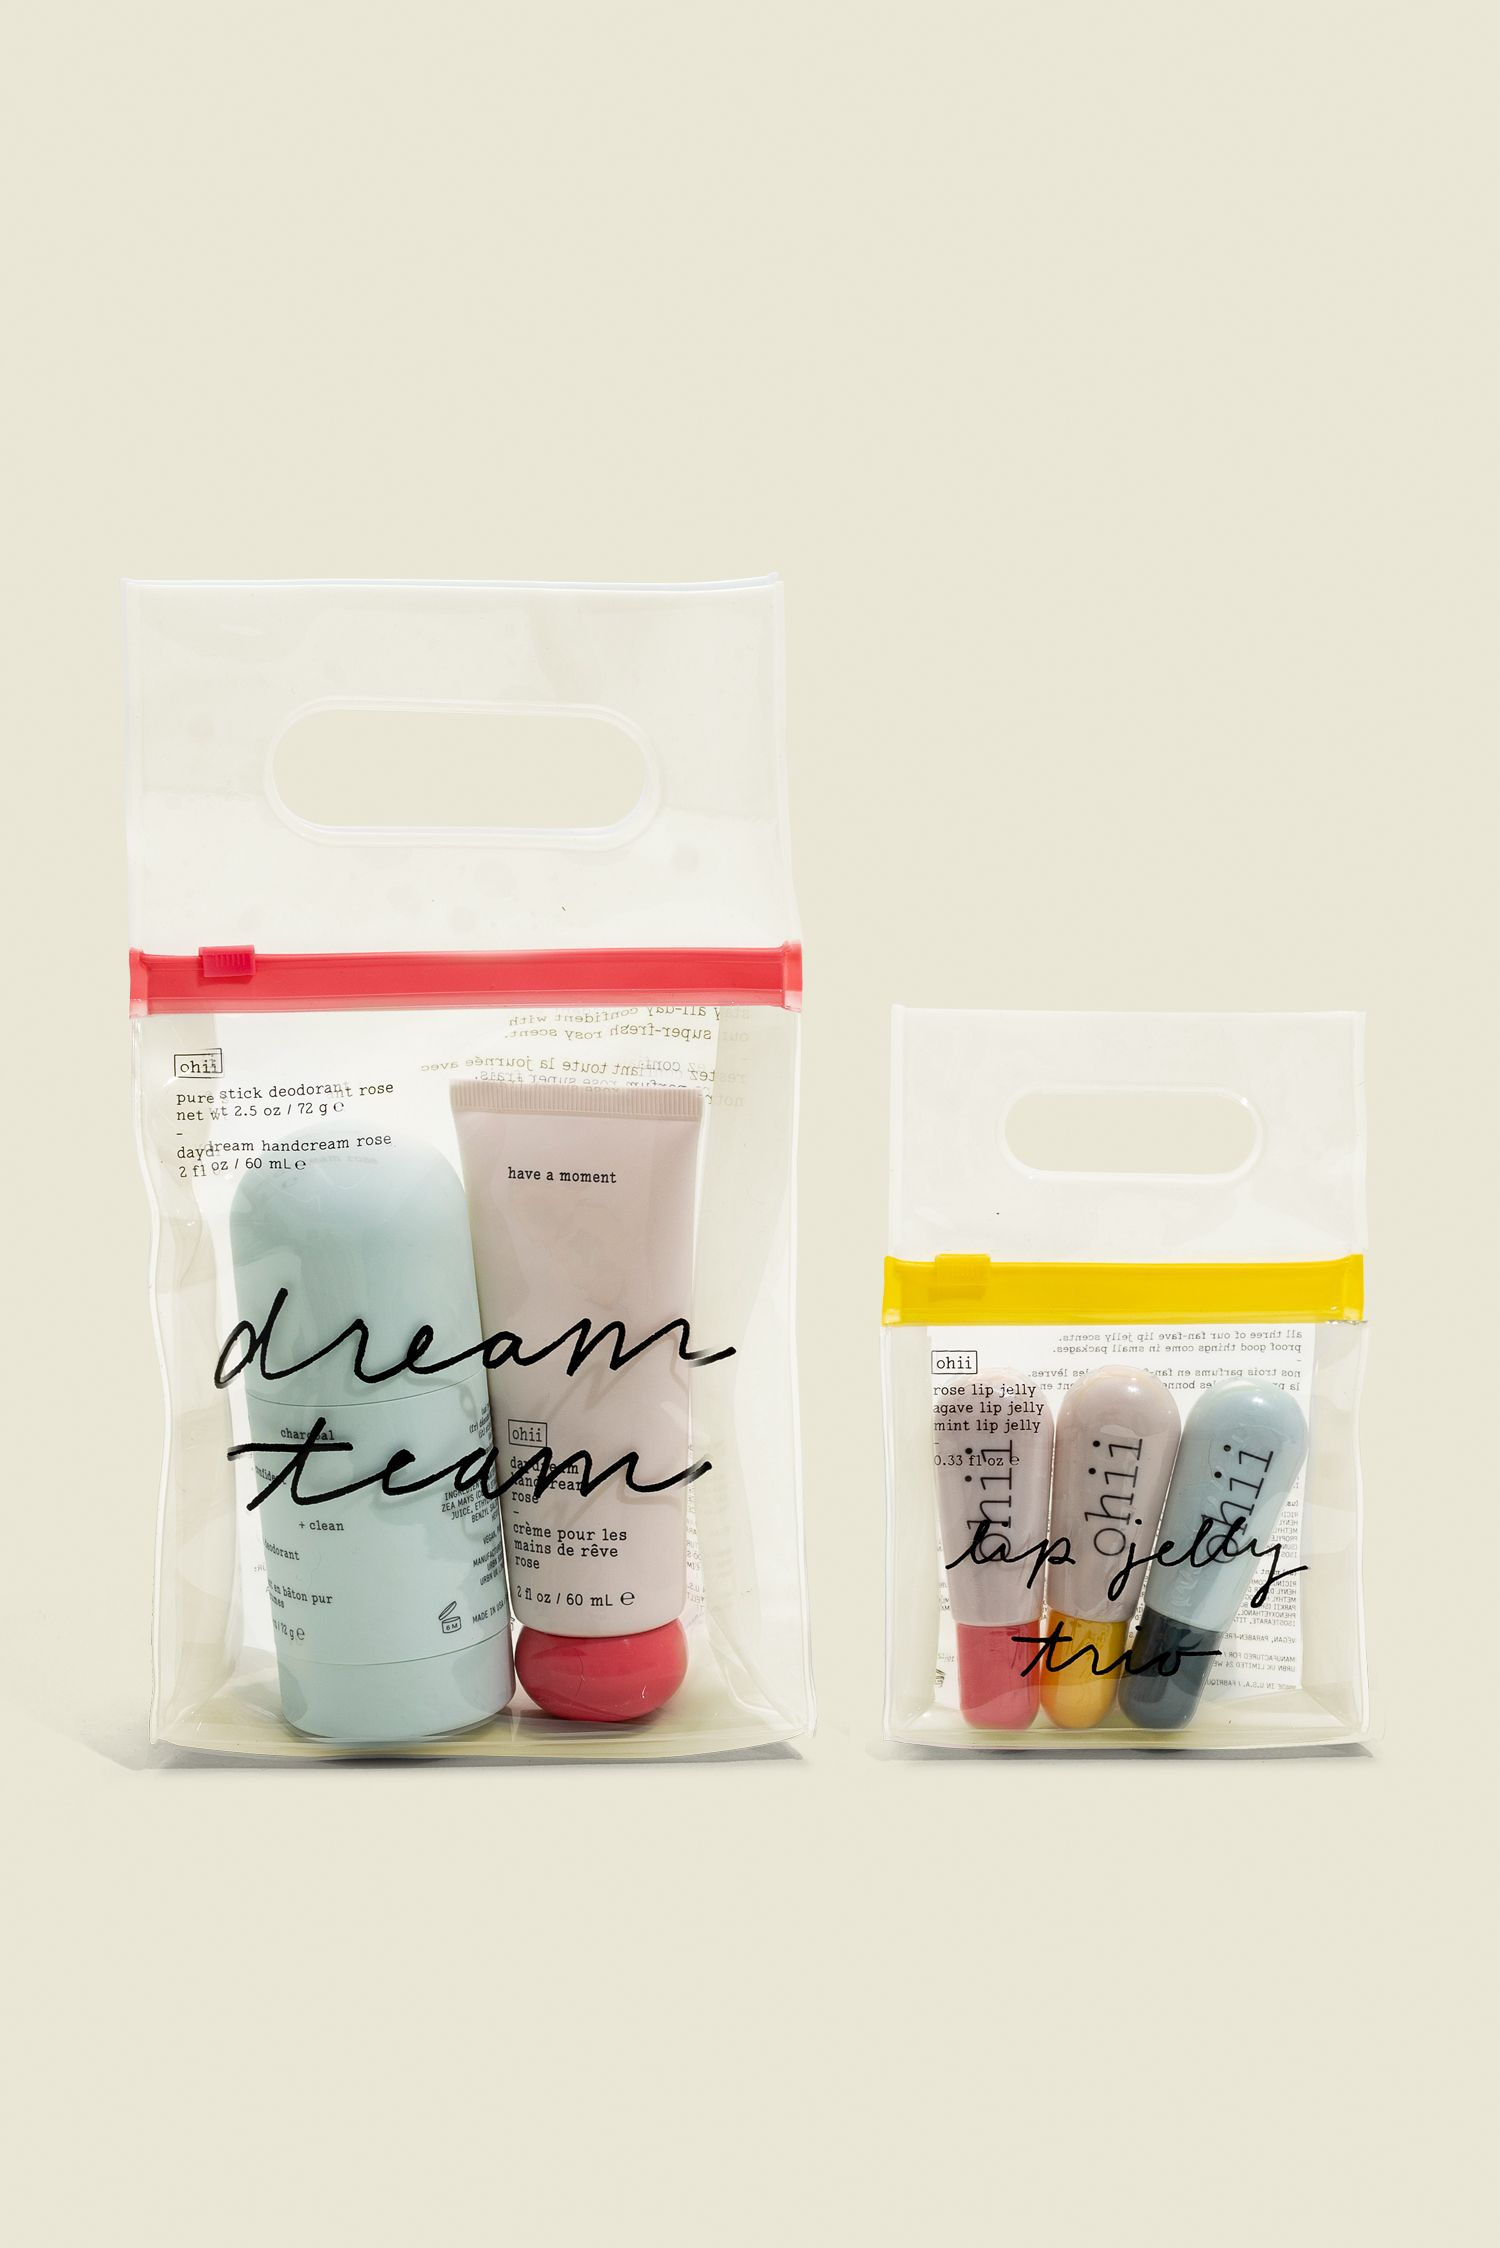 Beauty products packaged in ziplock bag